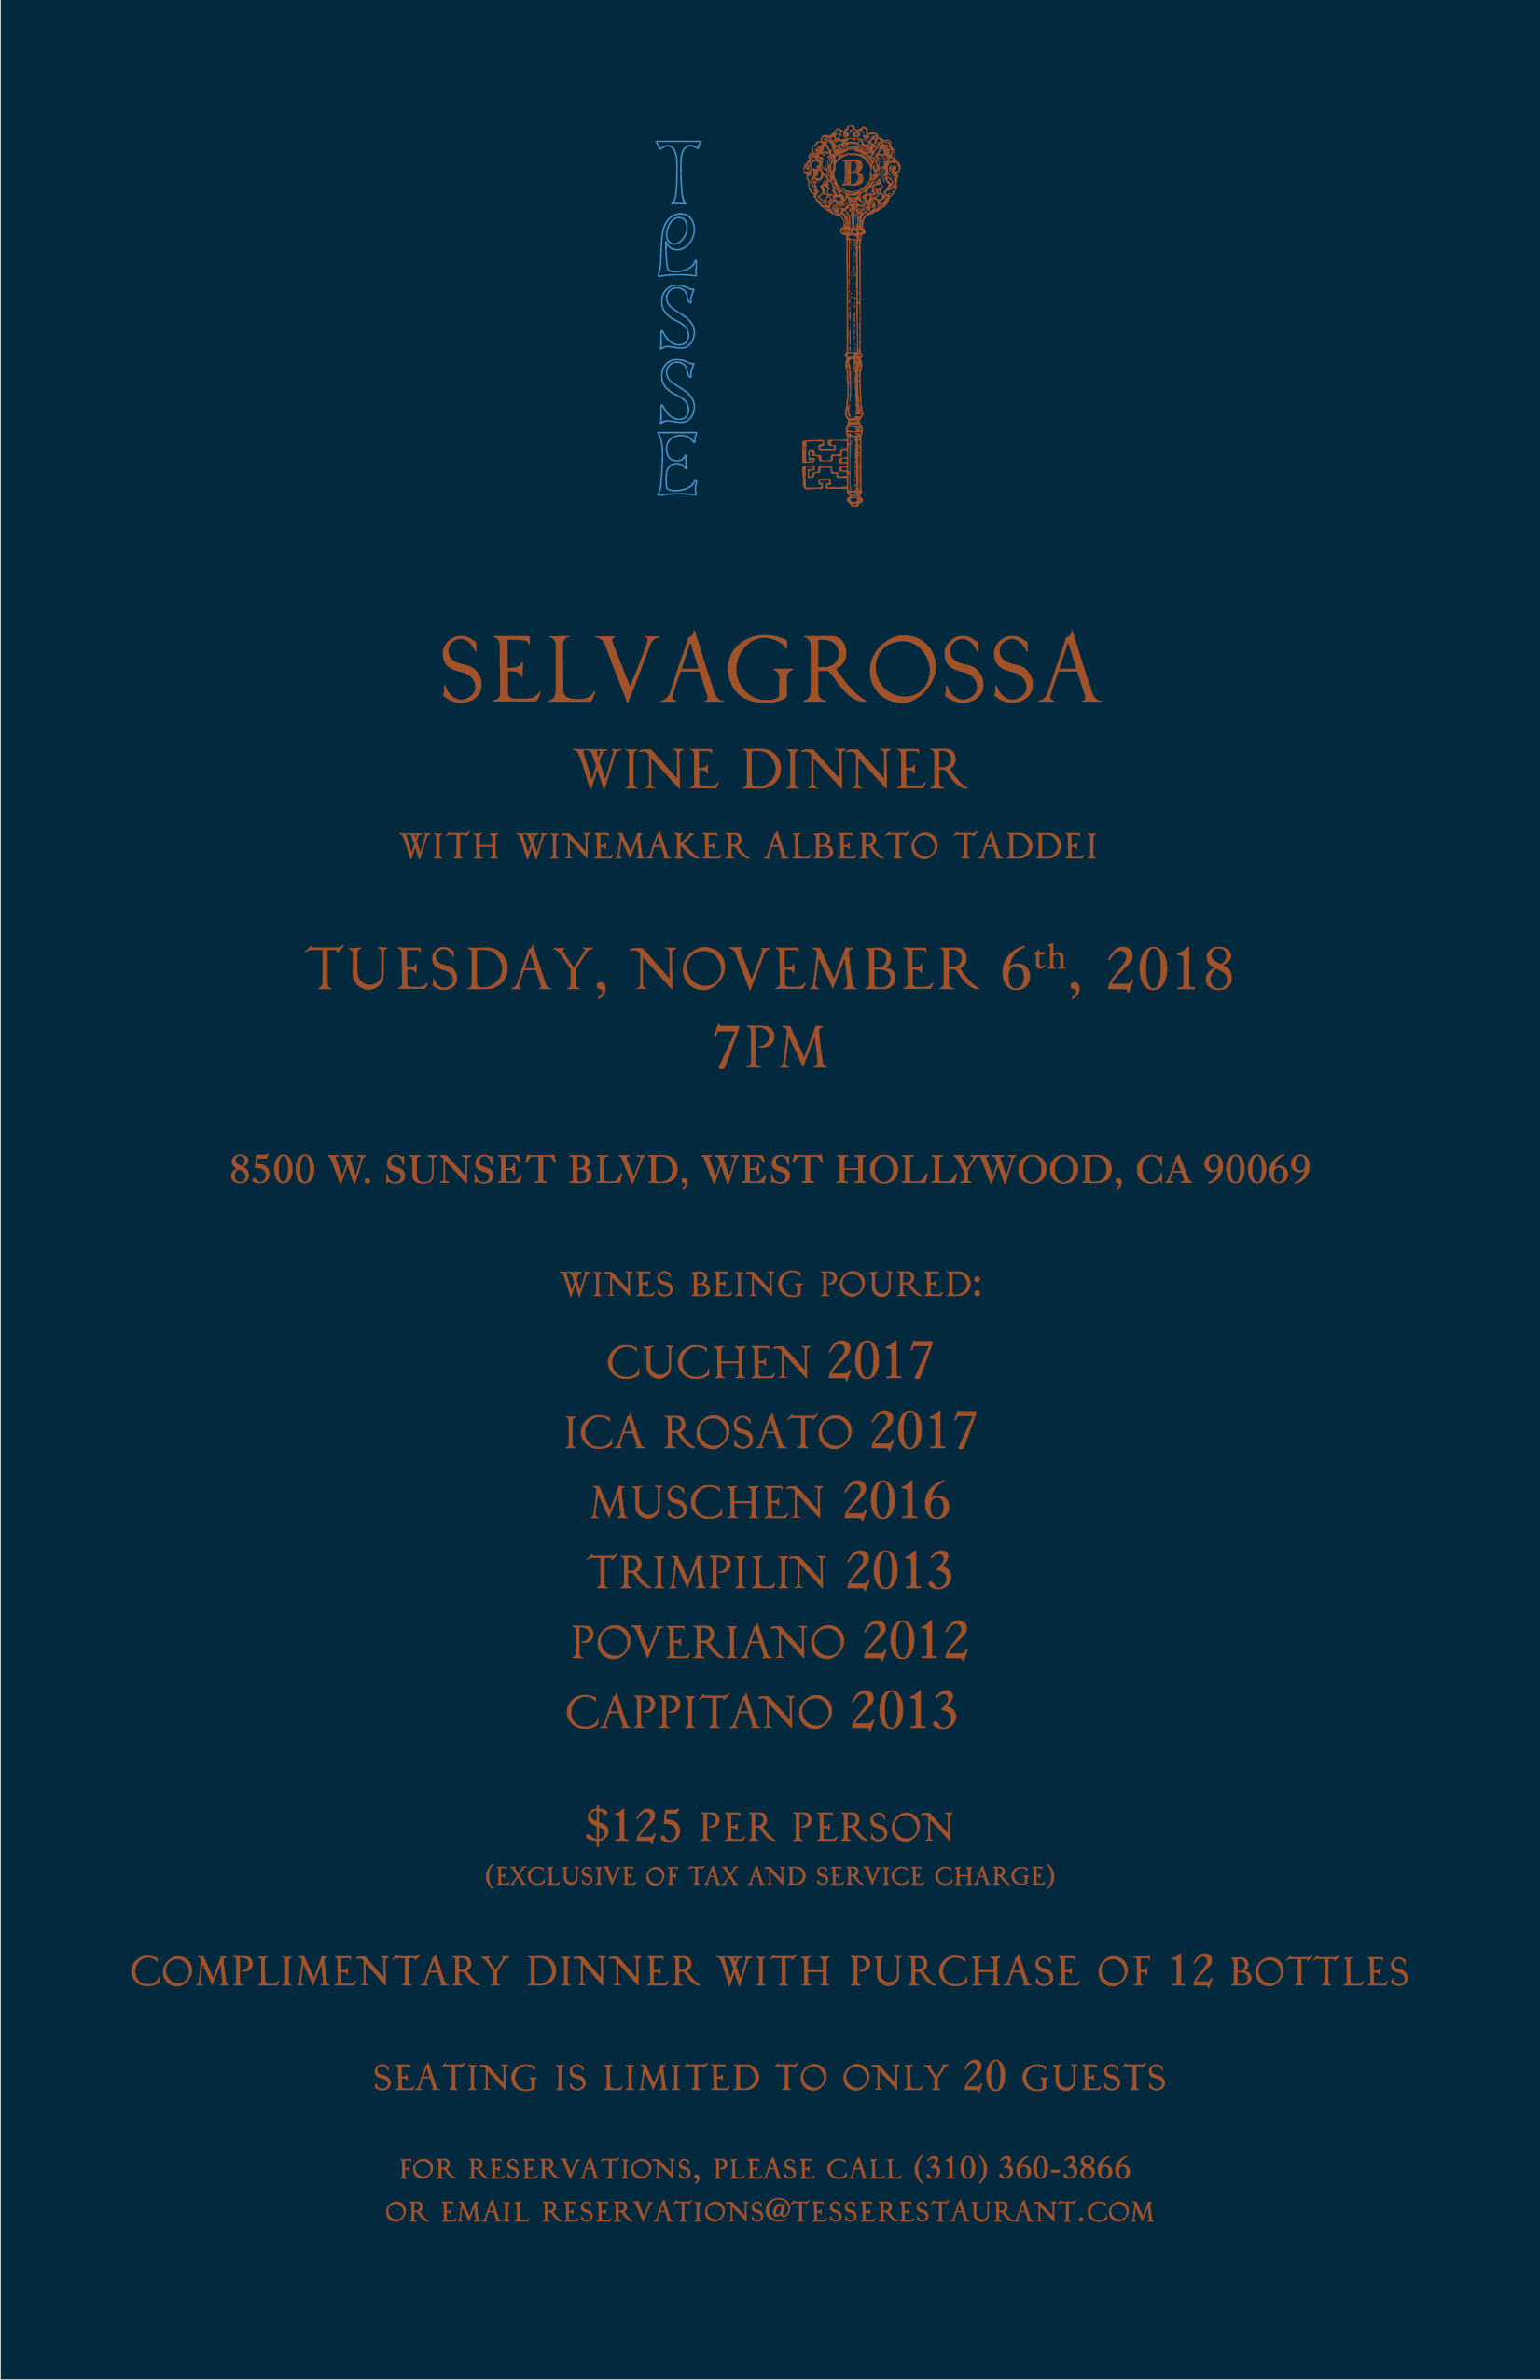 Selvagrossa Wine Dinner Invite.png